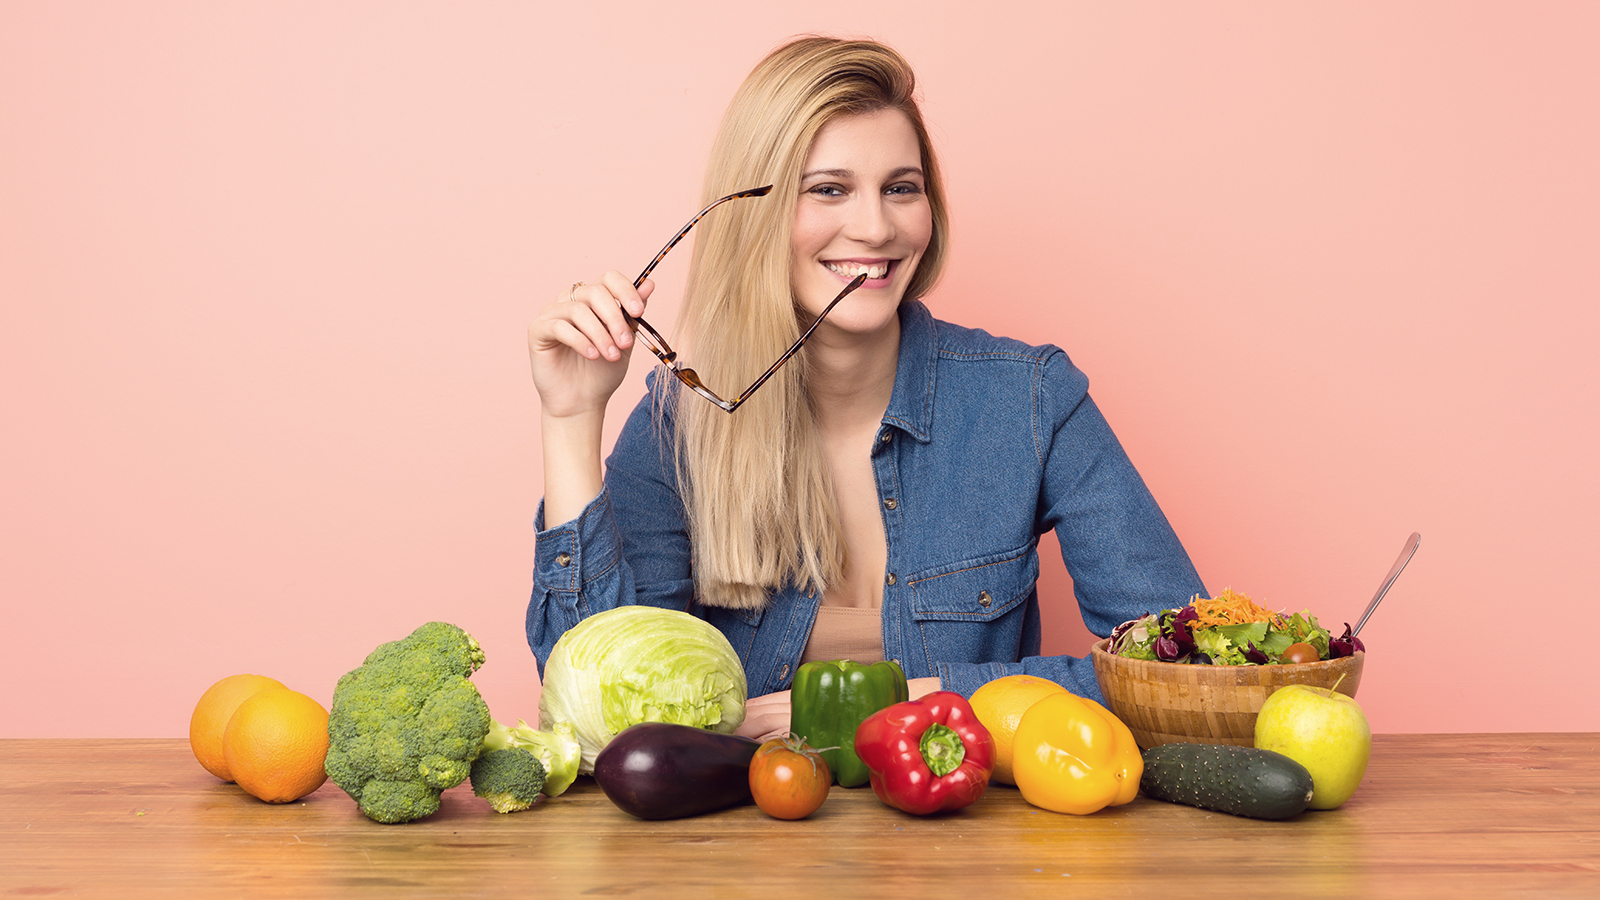 Top 12 Foods For Healthy Eyes